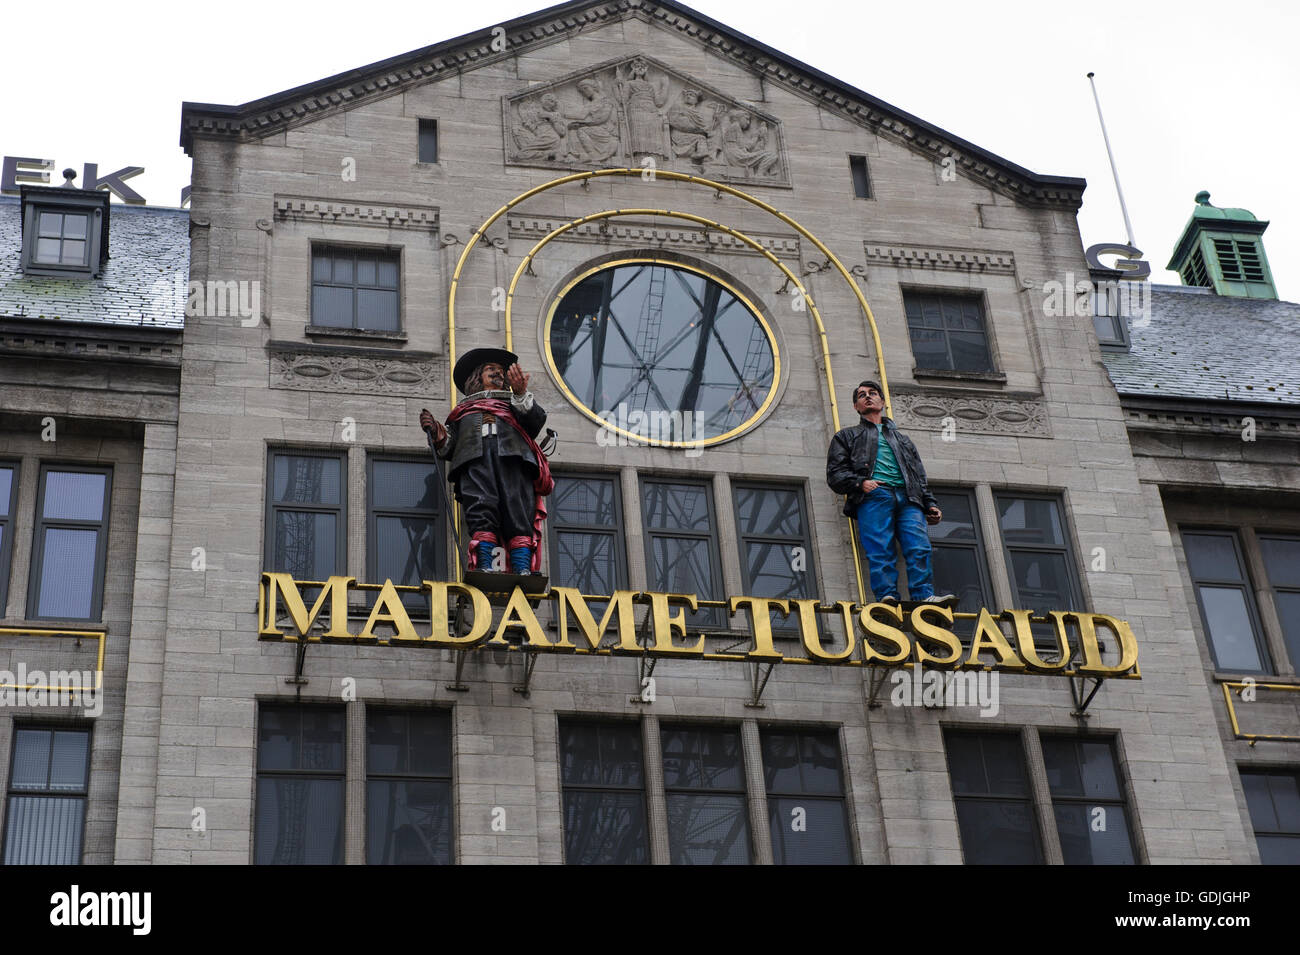 Madame Tussaud in Amsterdam, Holland, Netherdalnds. - Stock Image